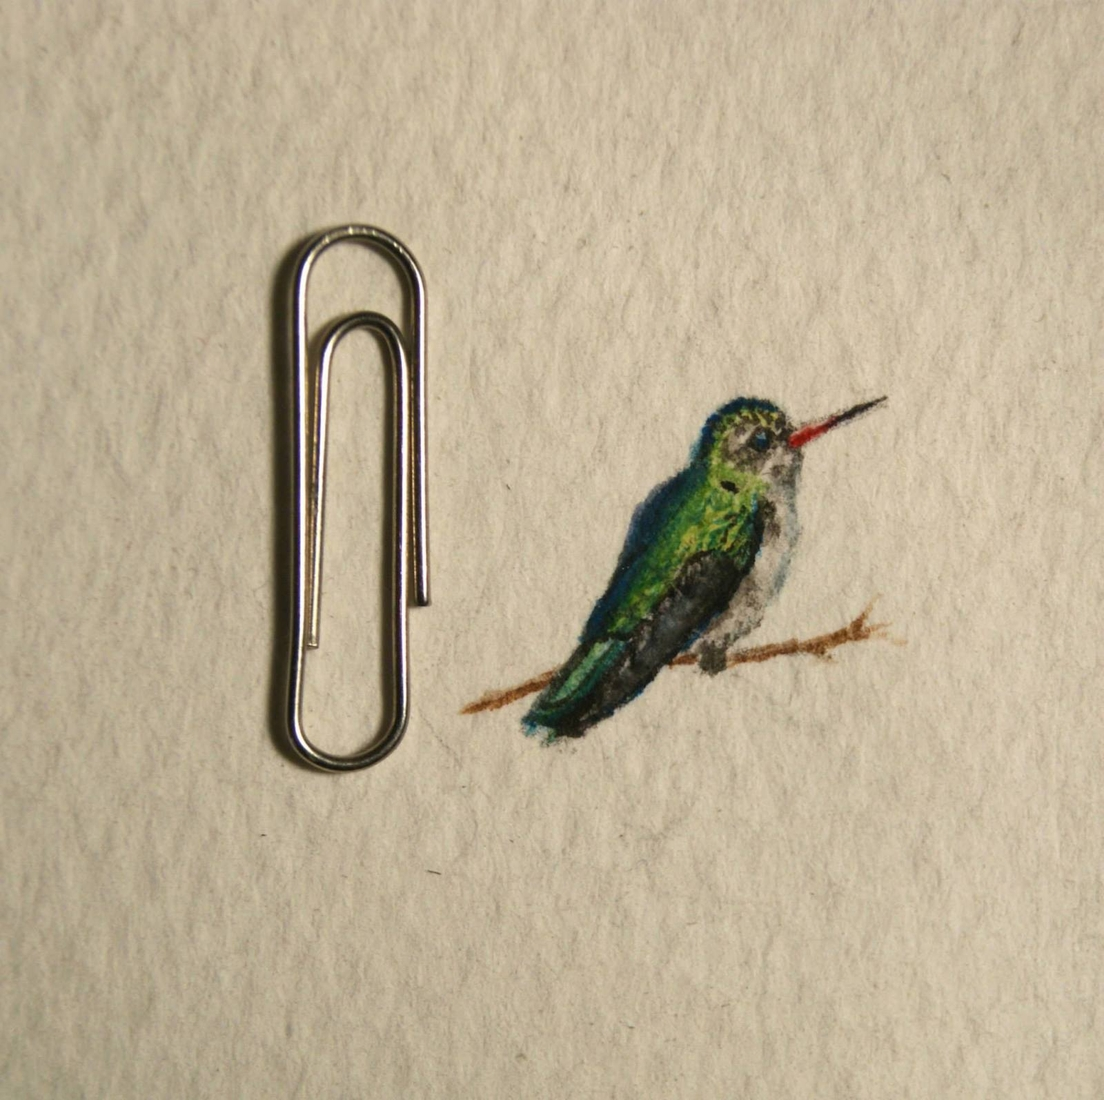 17-Bird-Guillermo-Méndez-Mr-Luigi-Miniature-Drawings-and-Watercolor-Paintings-www-designstack-co